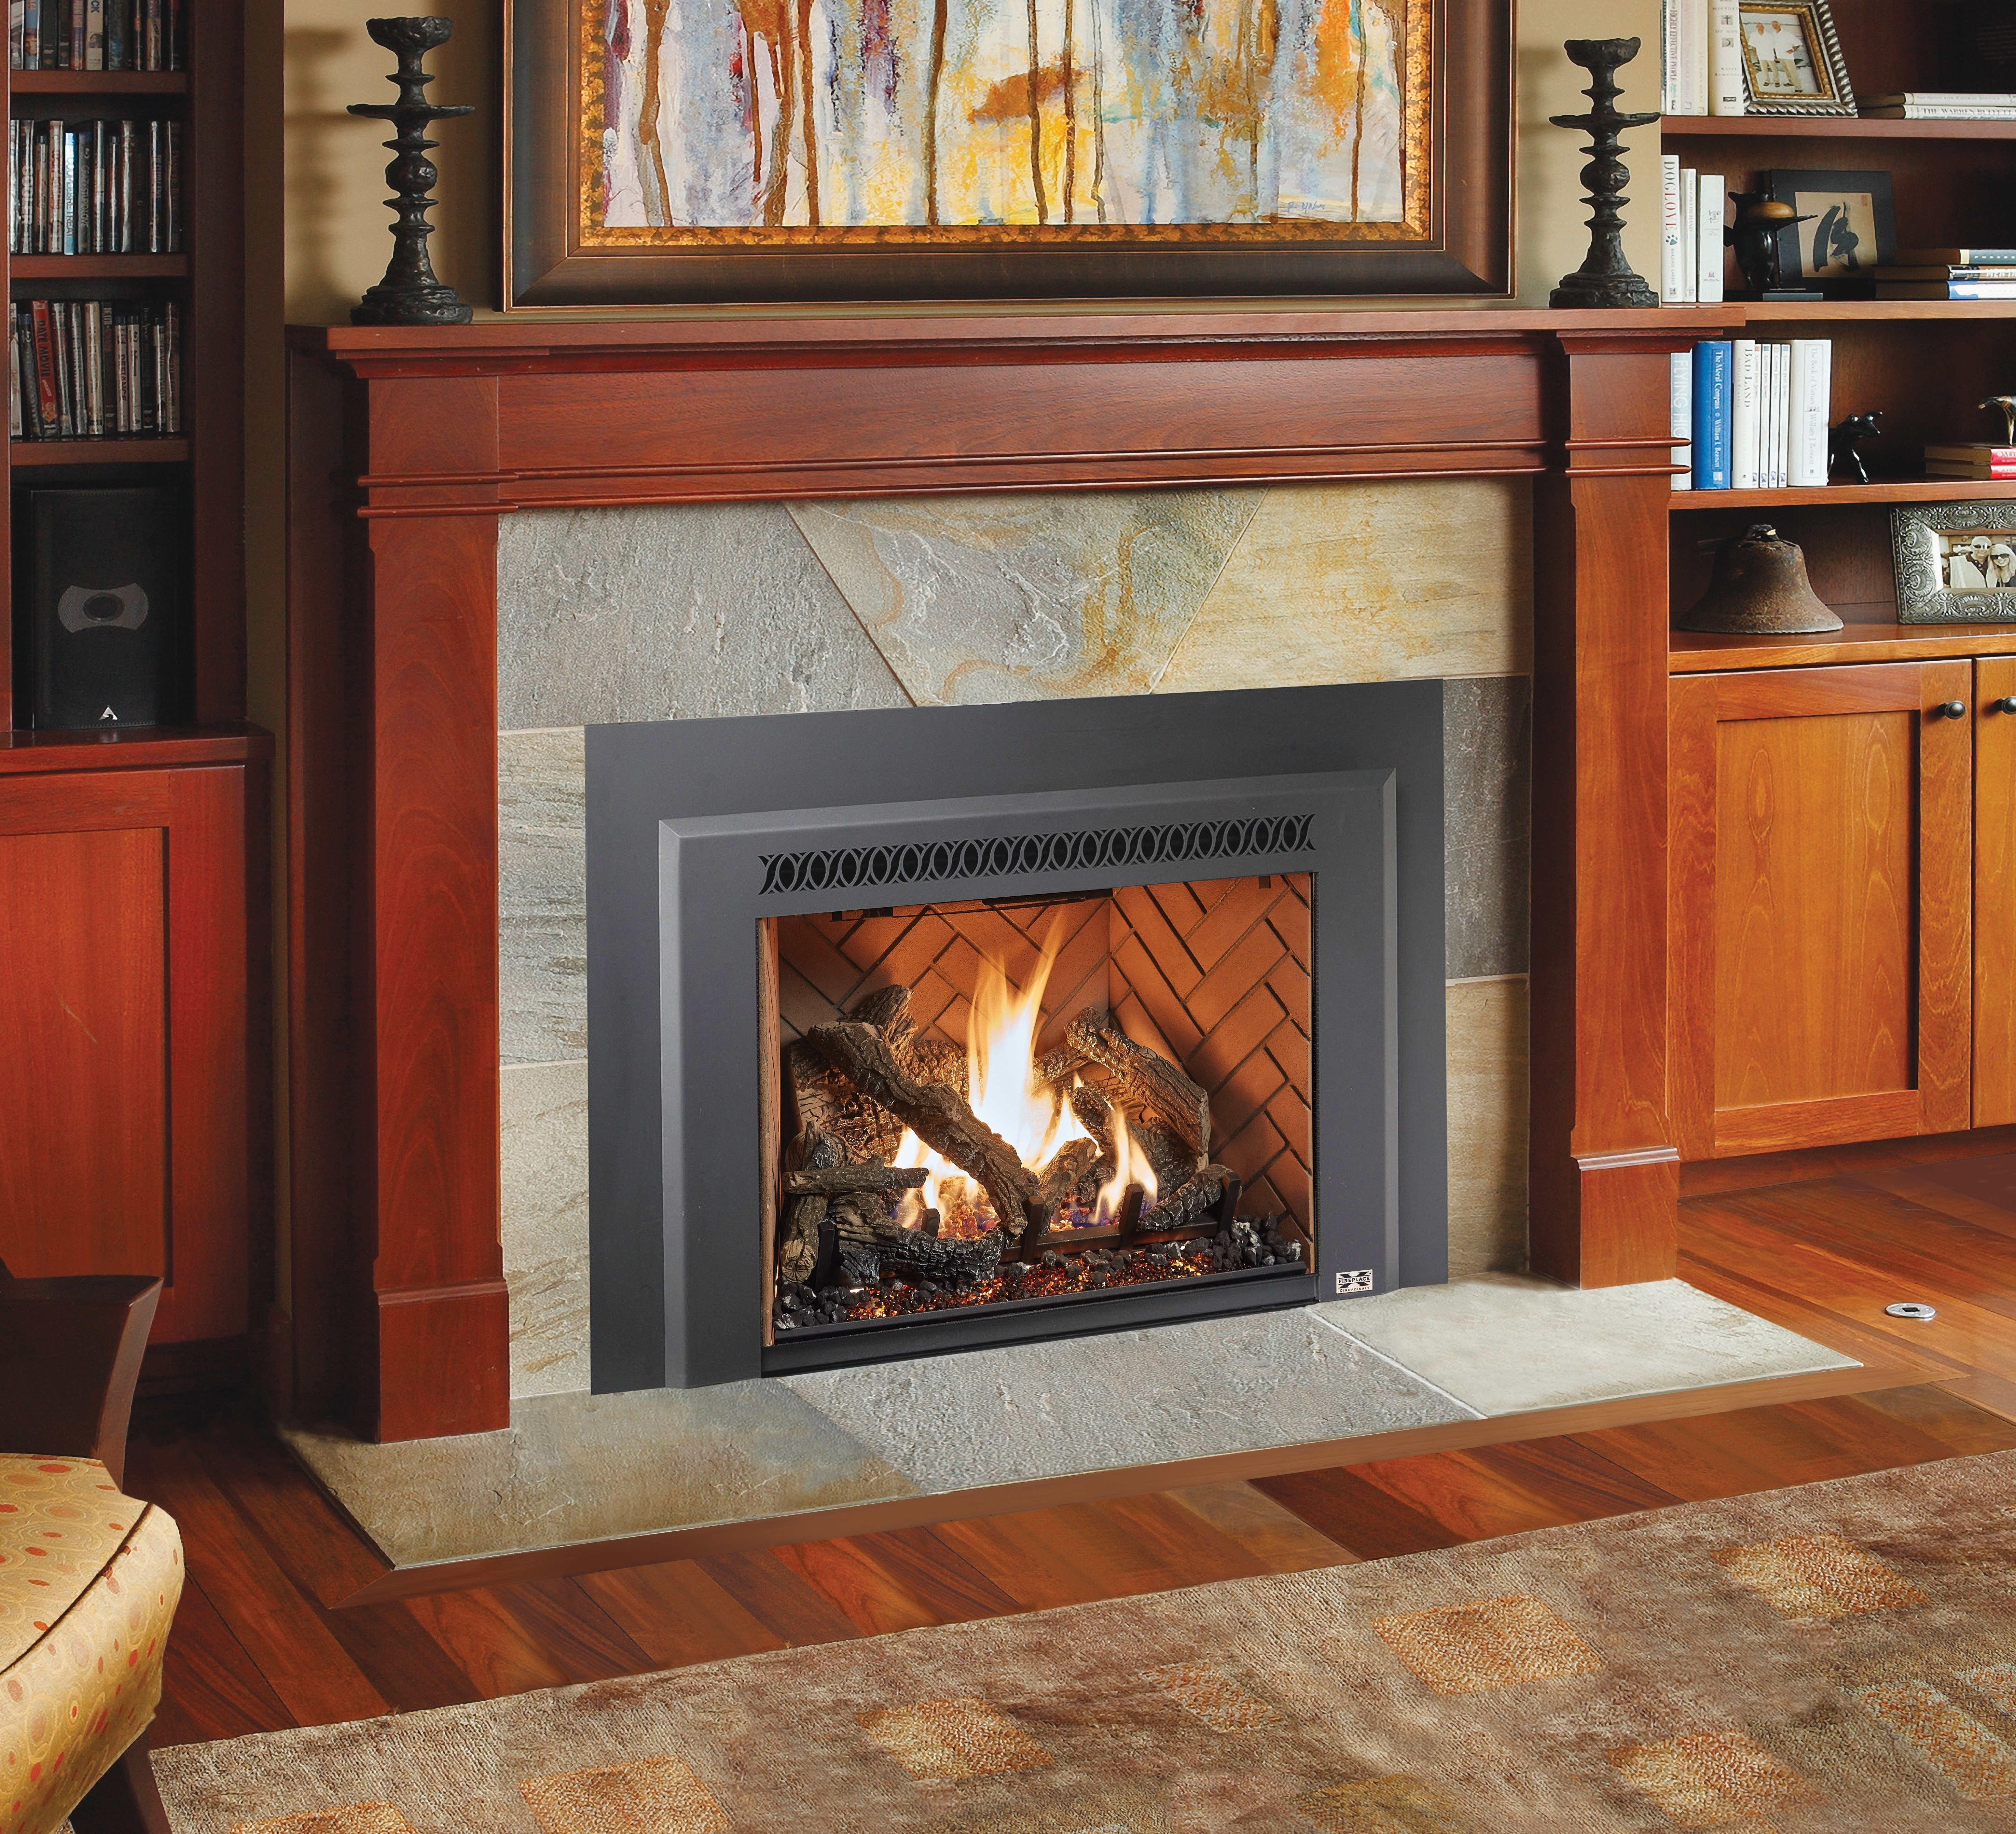 Image of a 616 Dancing-Fyre Insert by Travis Industries featuring Traditional Logs